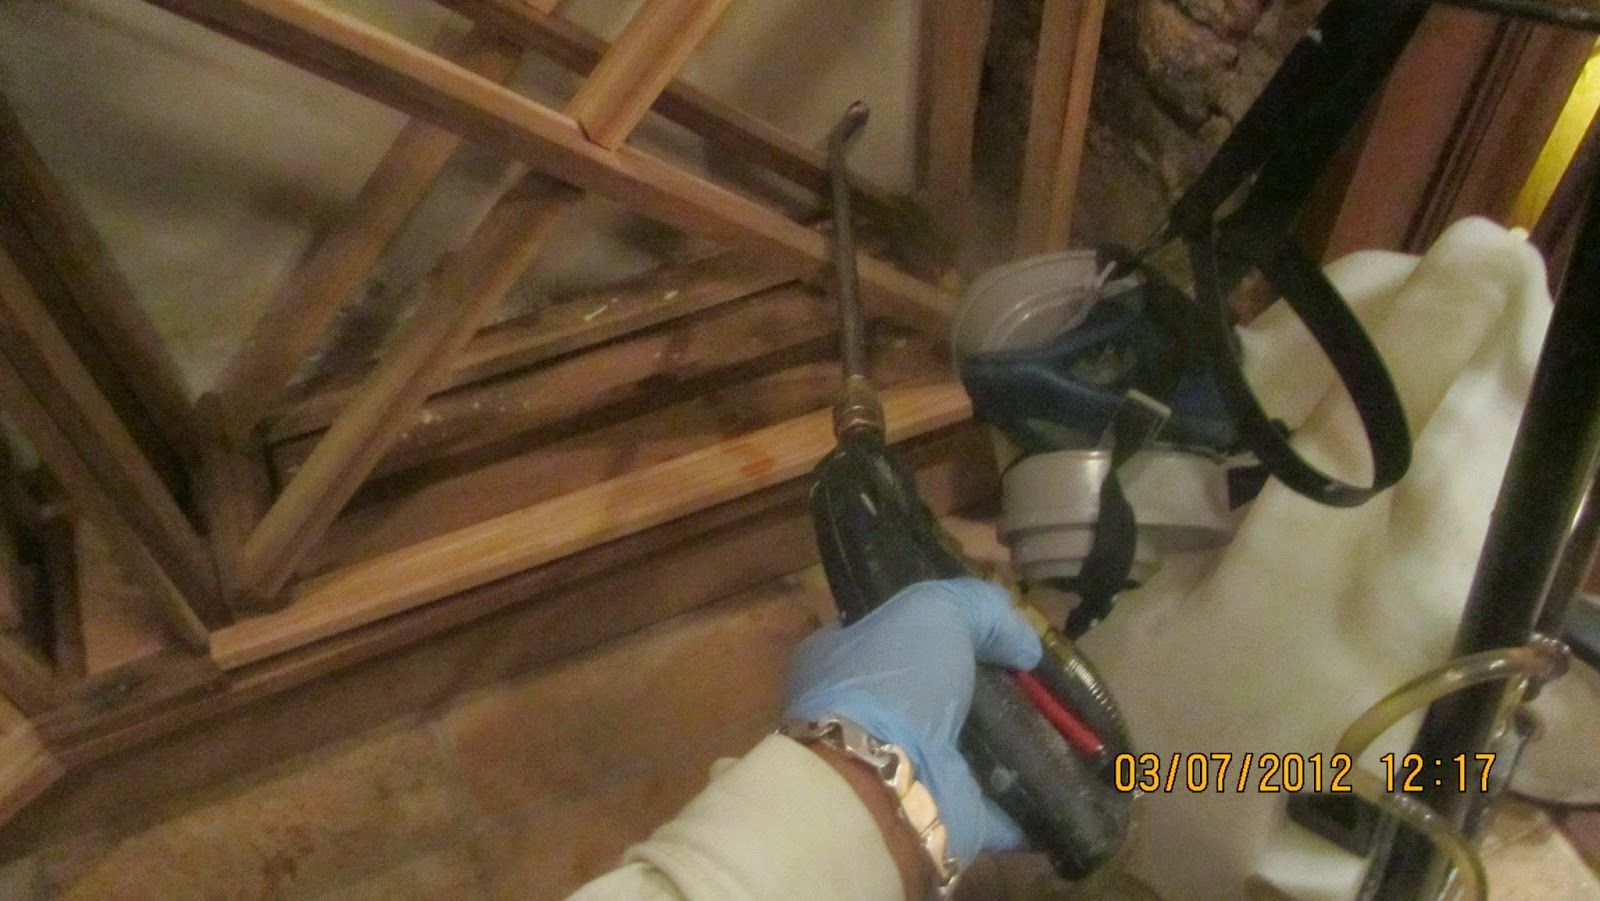 NYC Mold Inspection Services Mold Remediation Services in